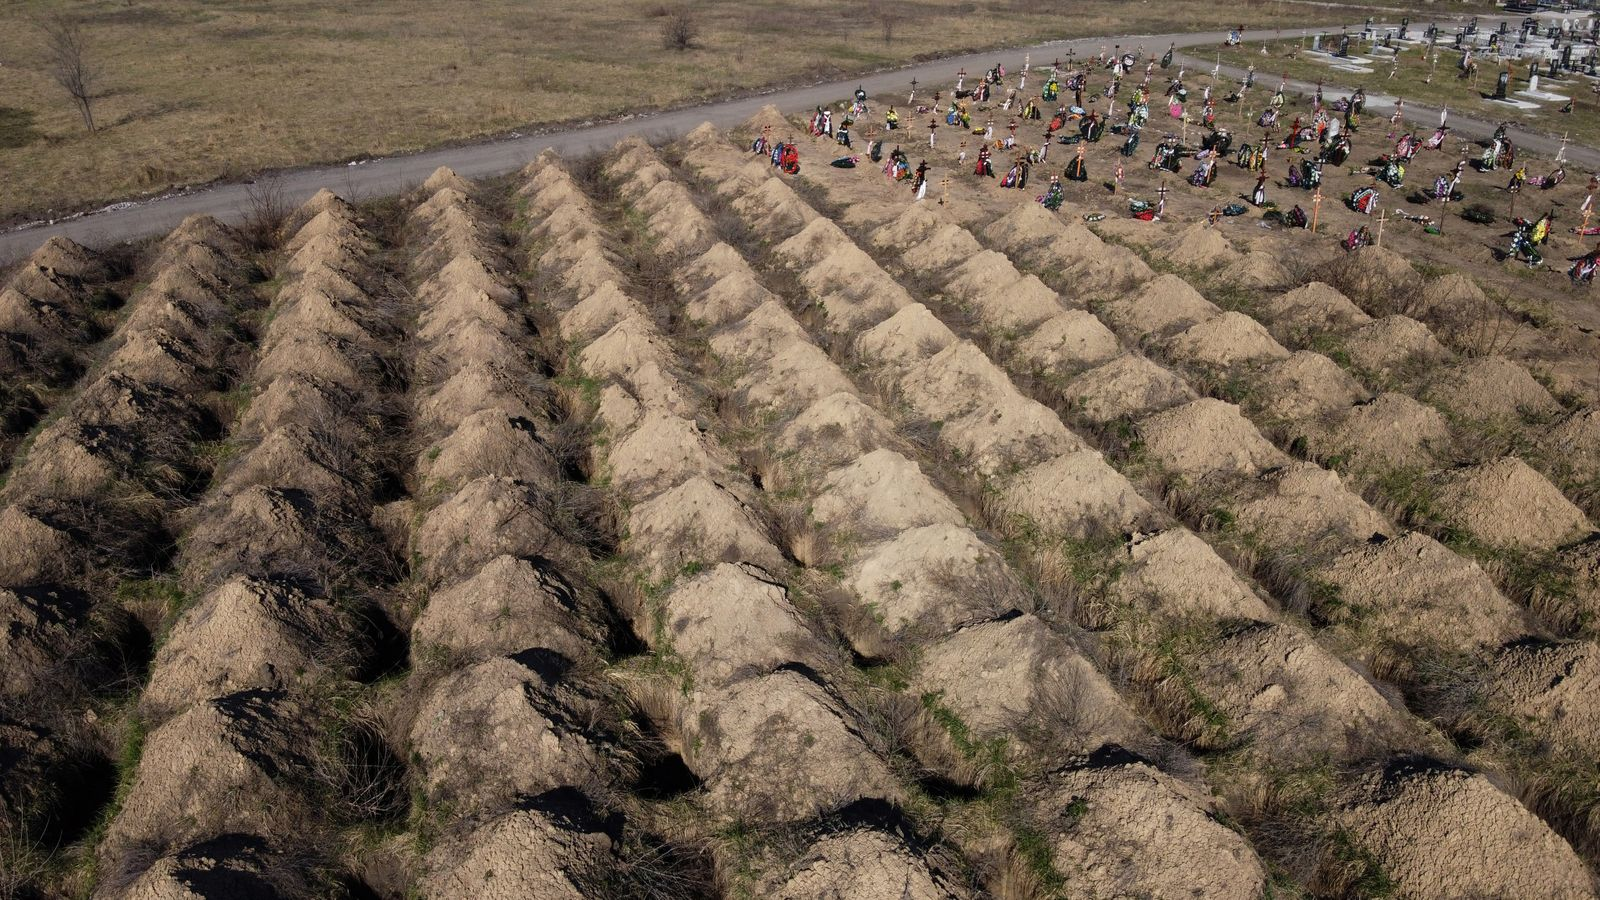 An aerial view shows graves, which according to local authorities were prepared for potential victims of the coronavirus disease (COVID-19) in Dnipro